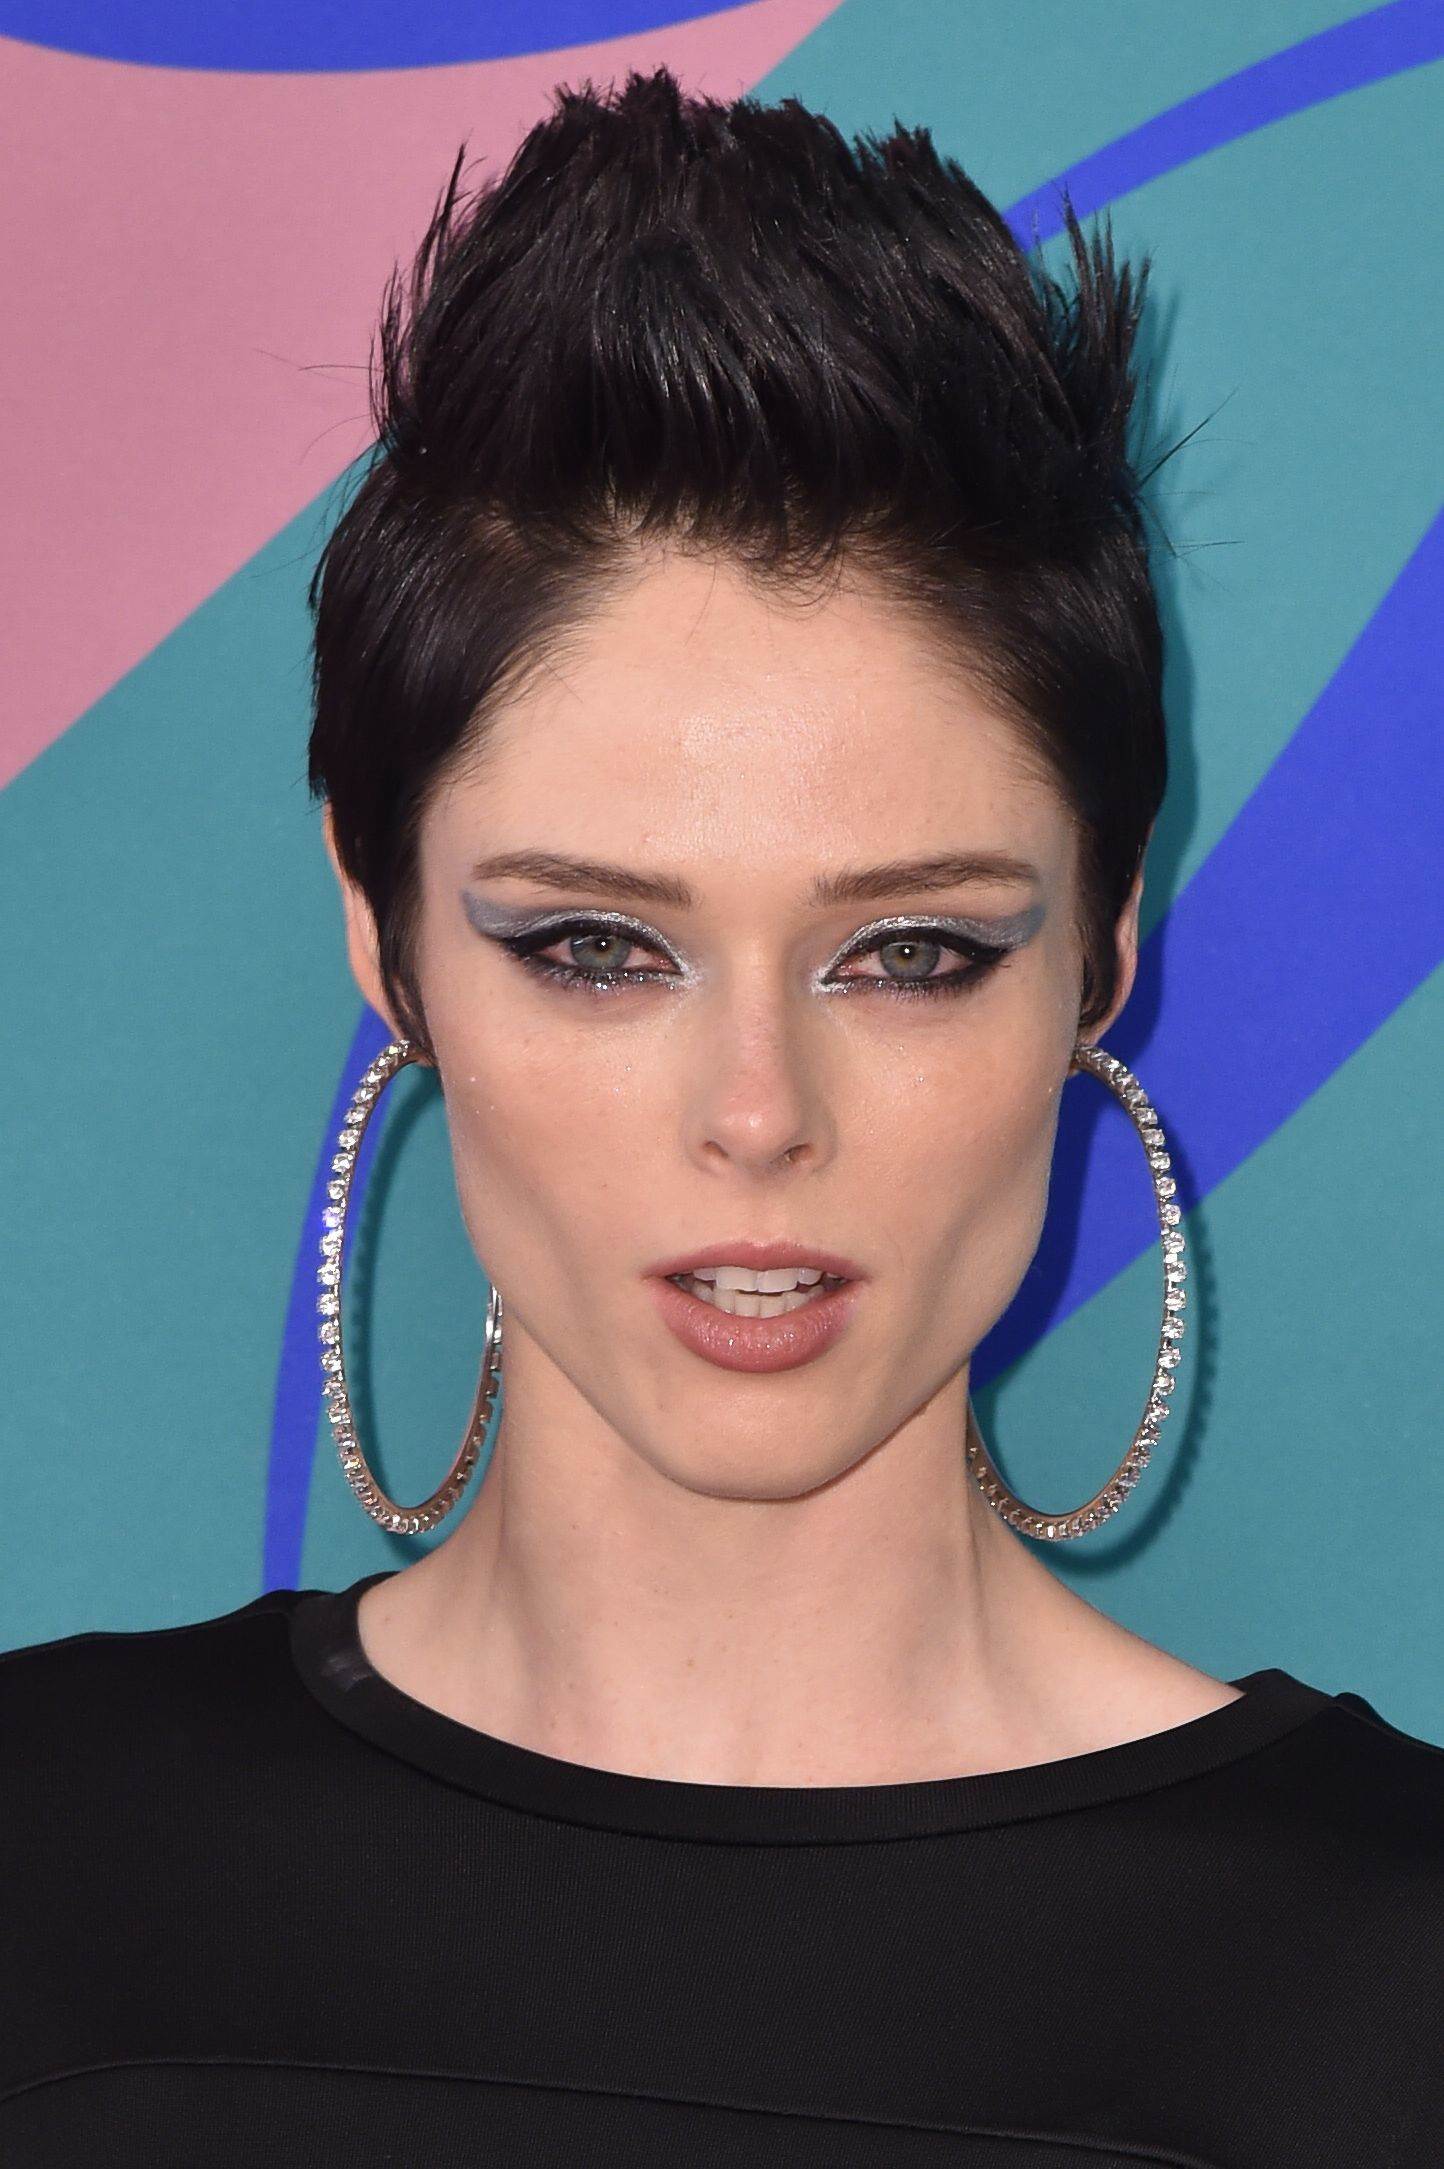 canadian model coco rocha with dark brown hair in a spiked up quiff punk hairstyle